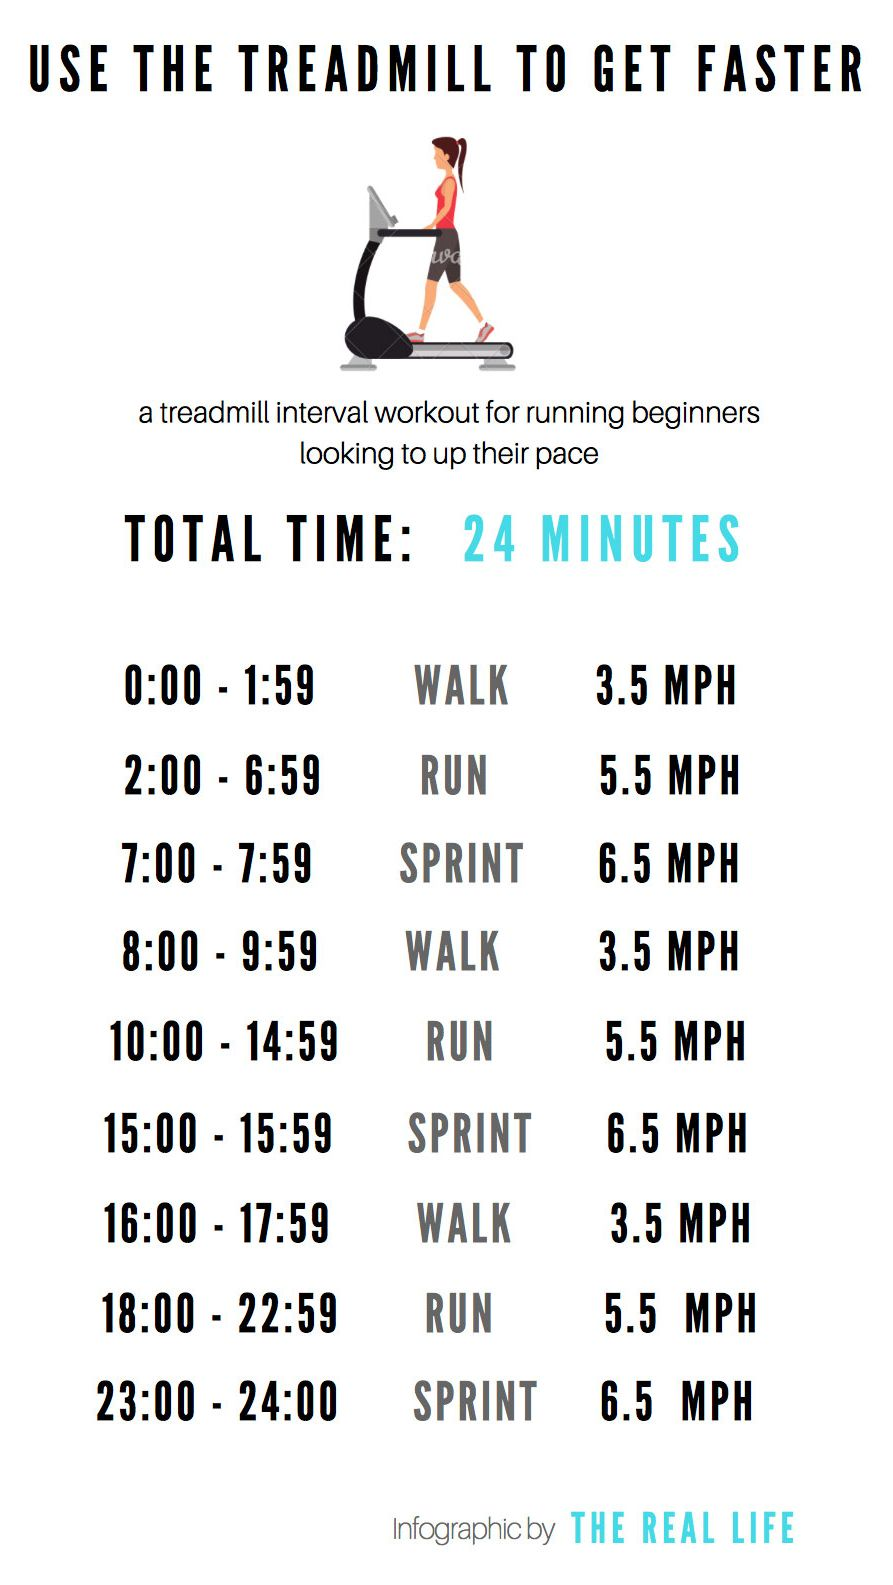 Increase pace with interval training